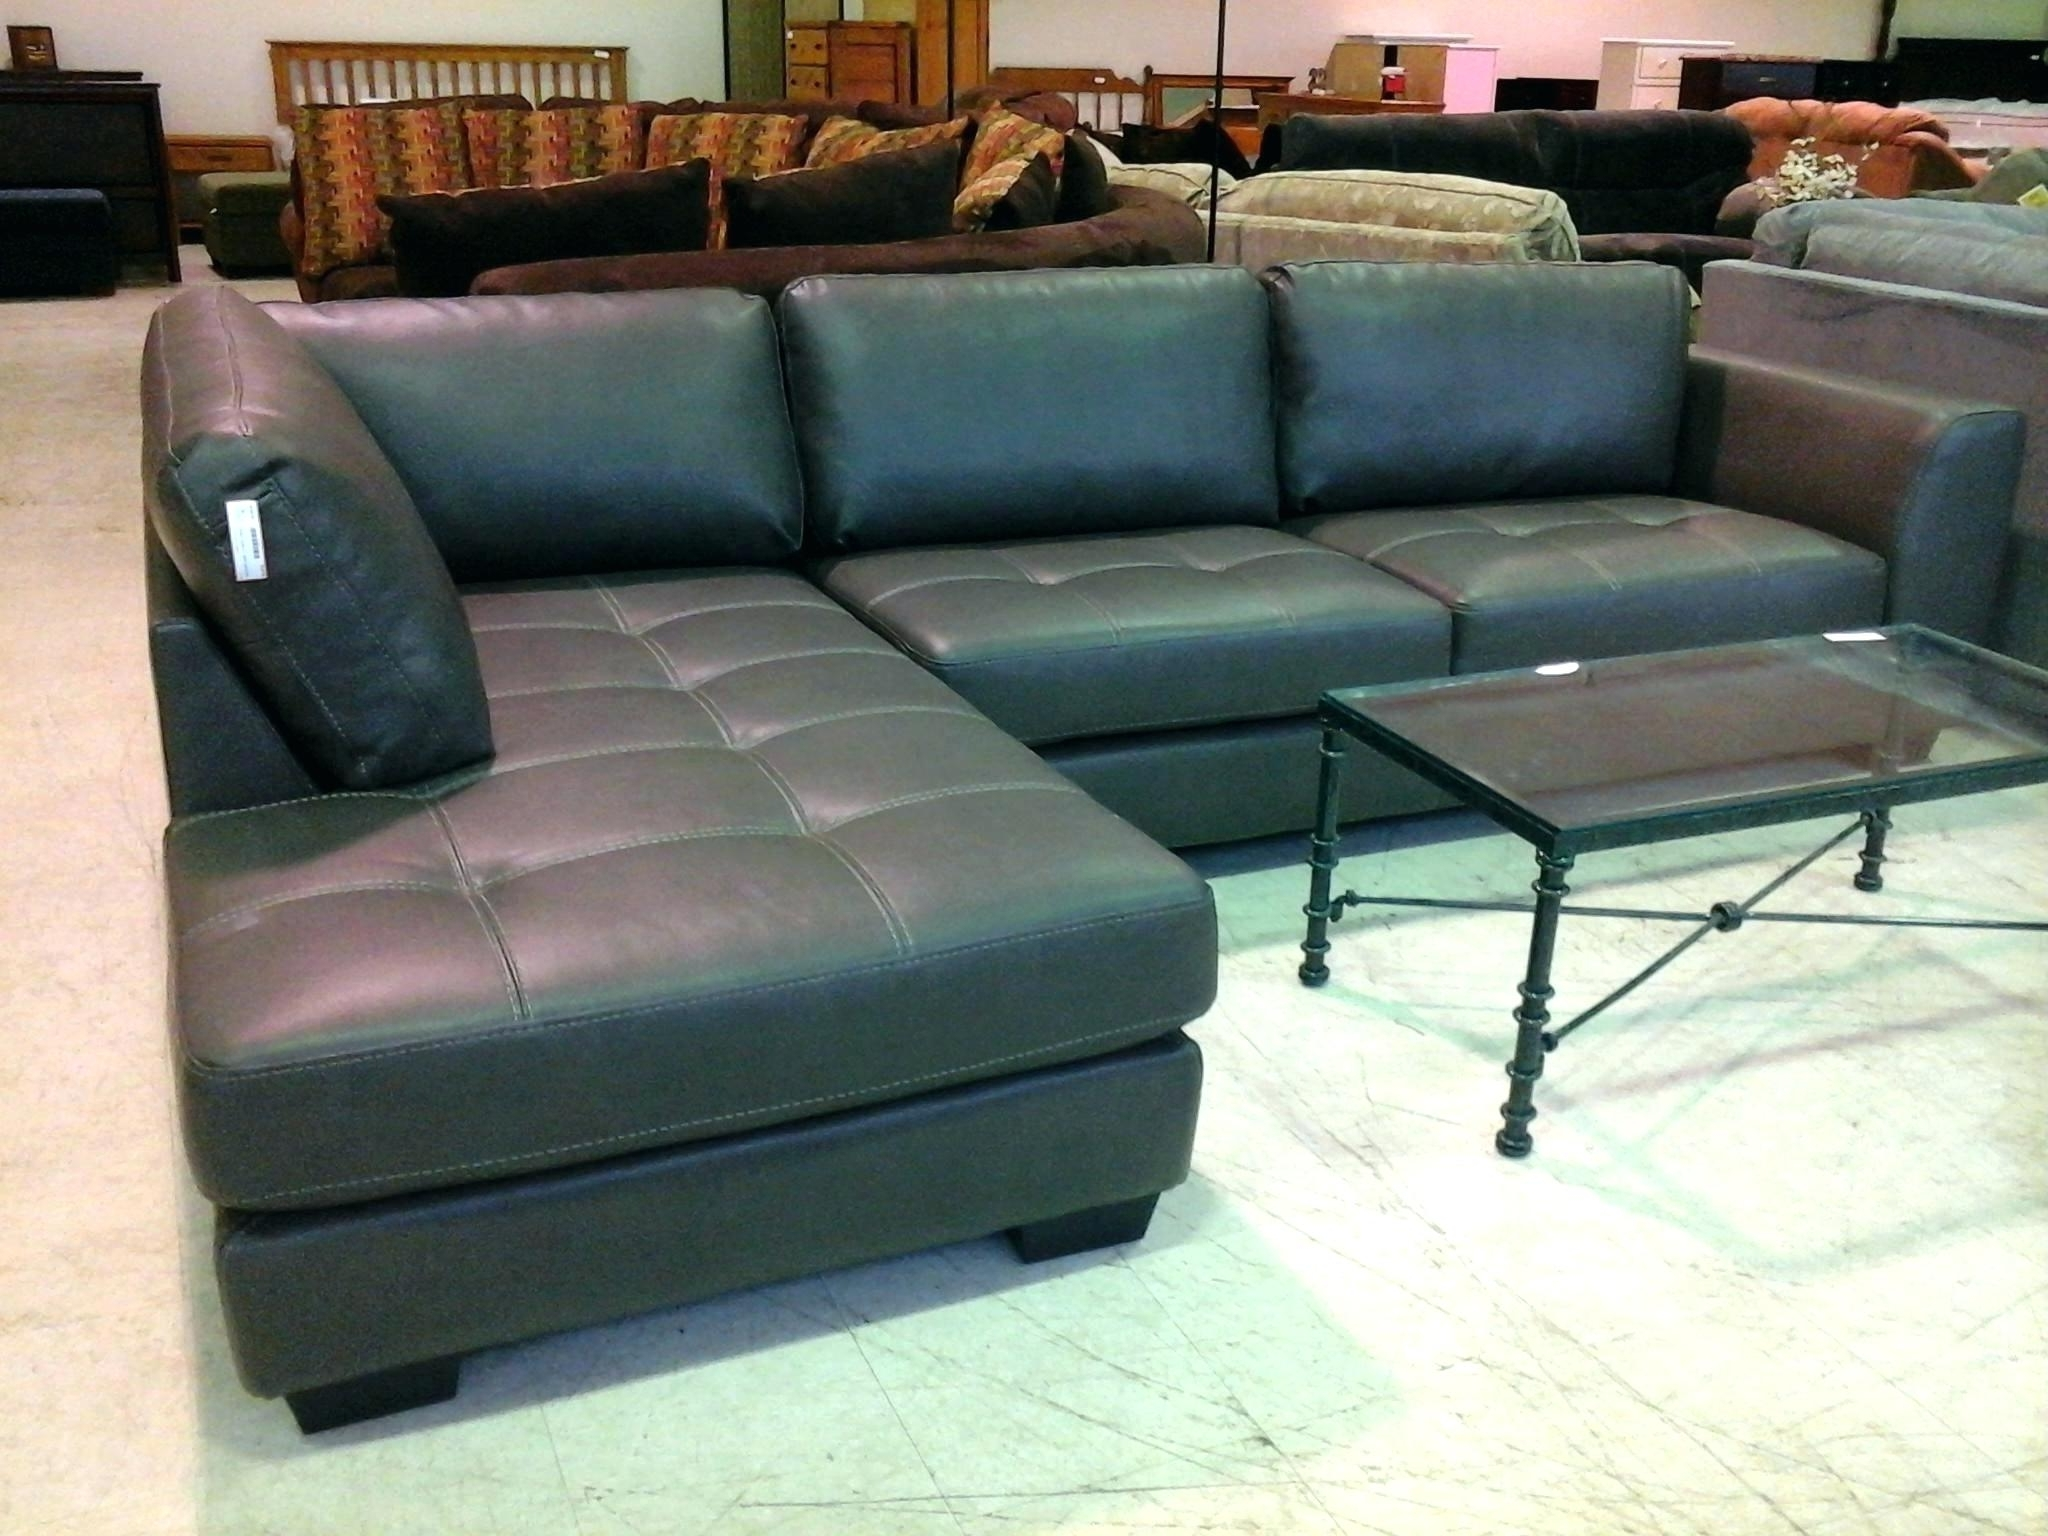 Most Recently Released Sears Sectional Sofa Natuzzi Clearwater Grey – Jasonatavastrealty Throughout Craftsman Sectional Sofas (View 12 of 15)